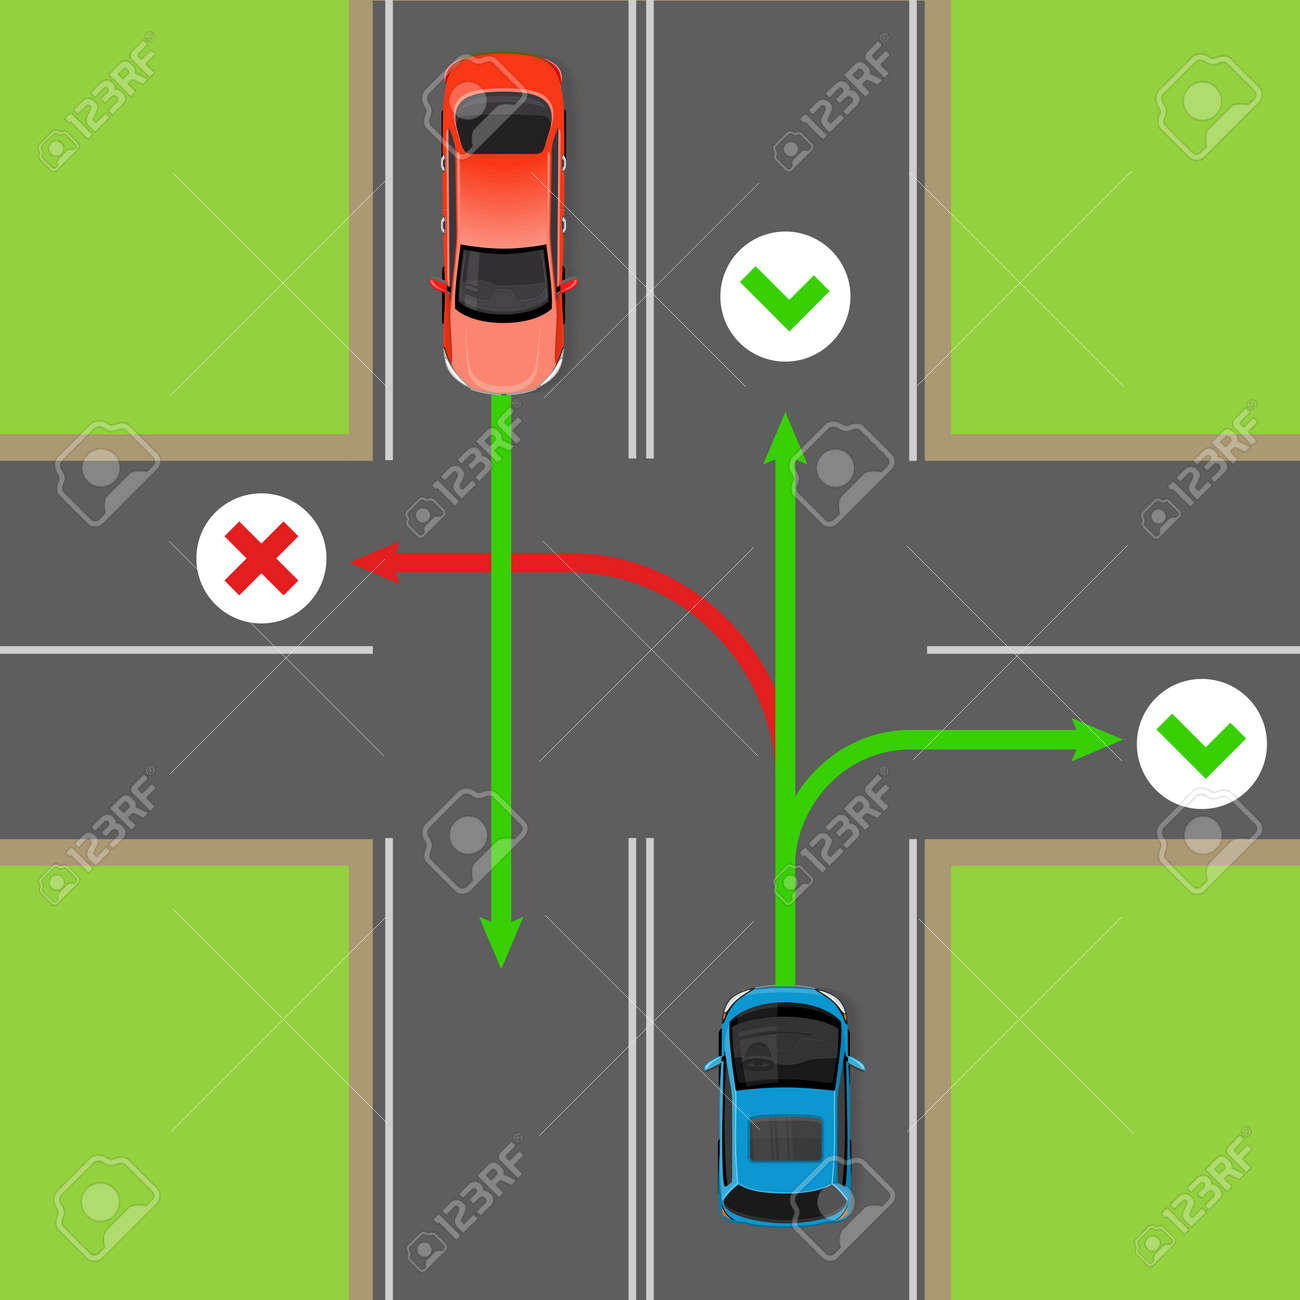 Turn Rules On Four-Way Intersection Vector Diagram Royalty Free ...